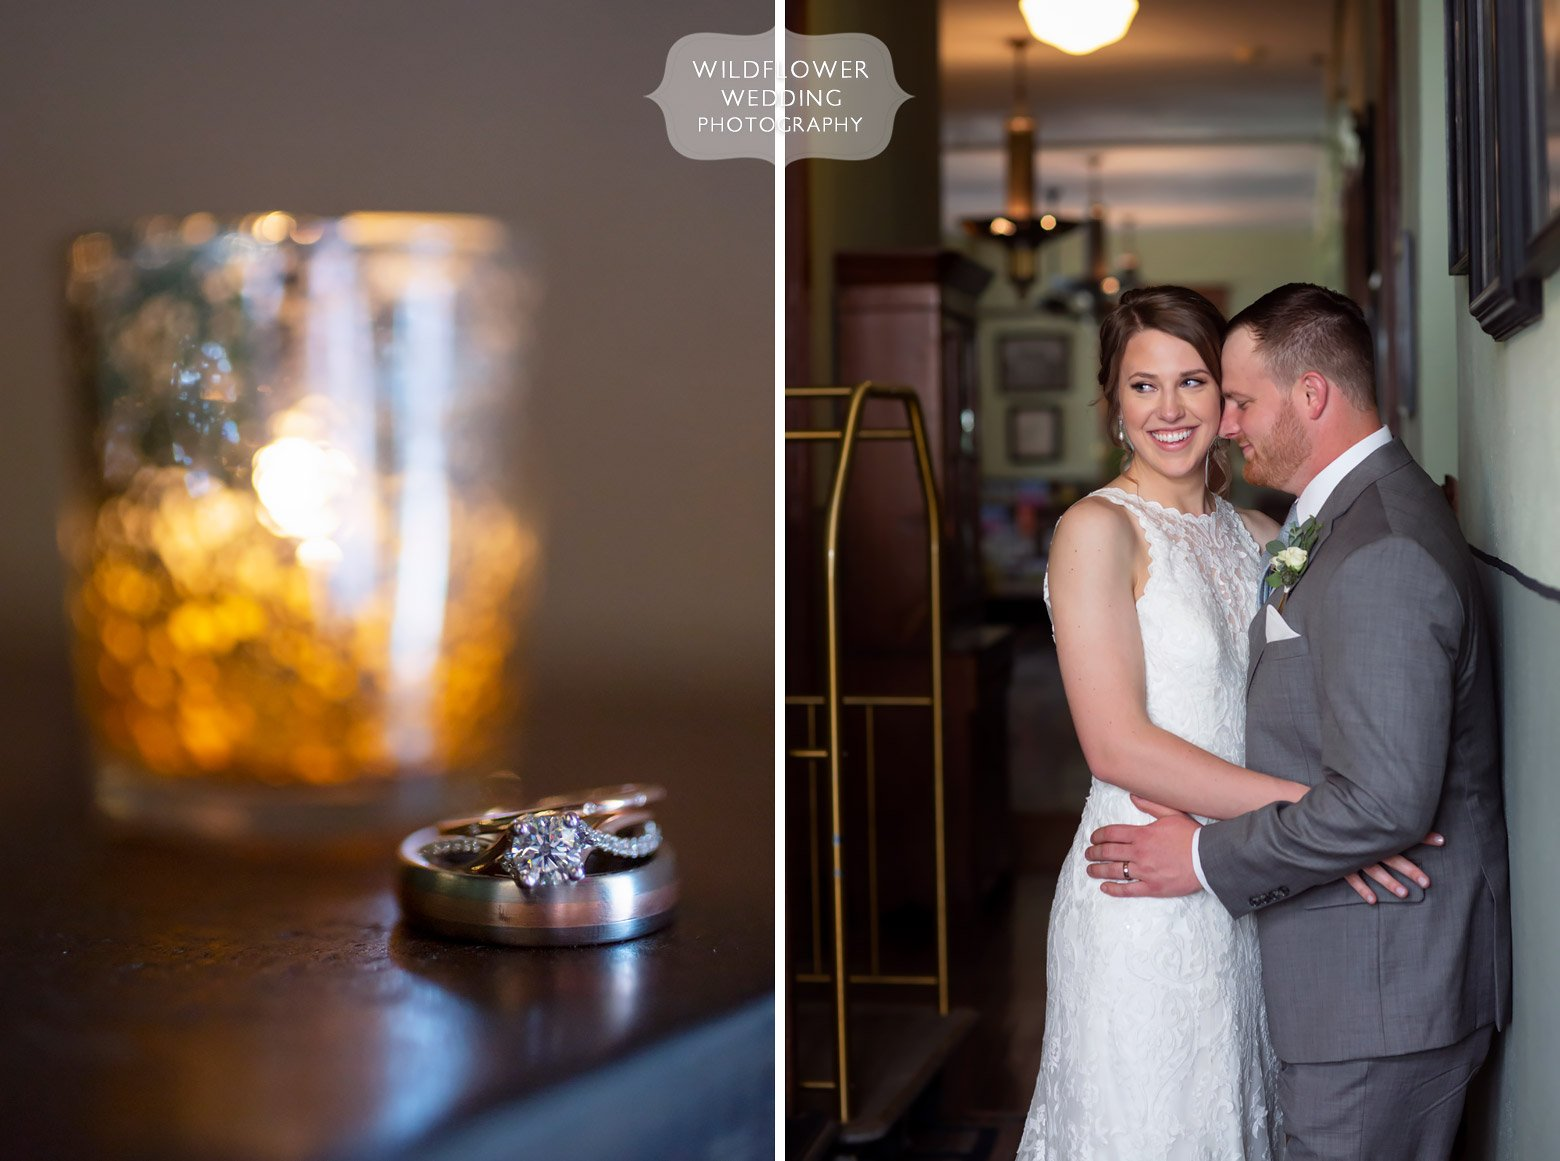 Romantic wedding photo of bride and groom in historic hotel.